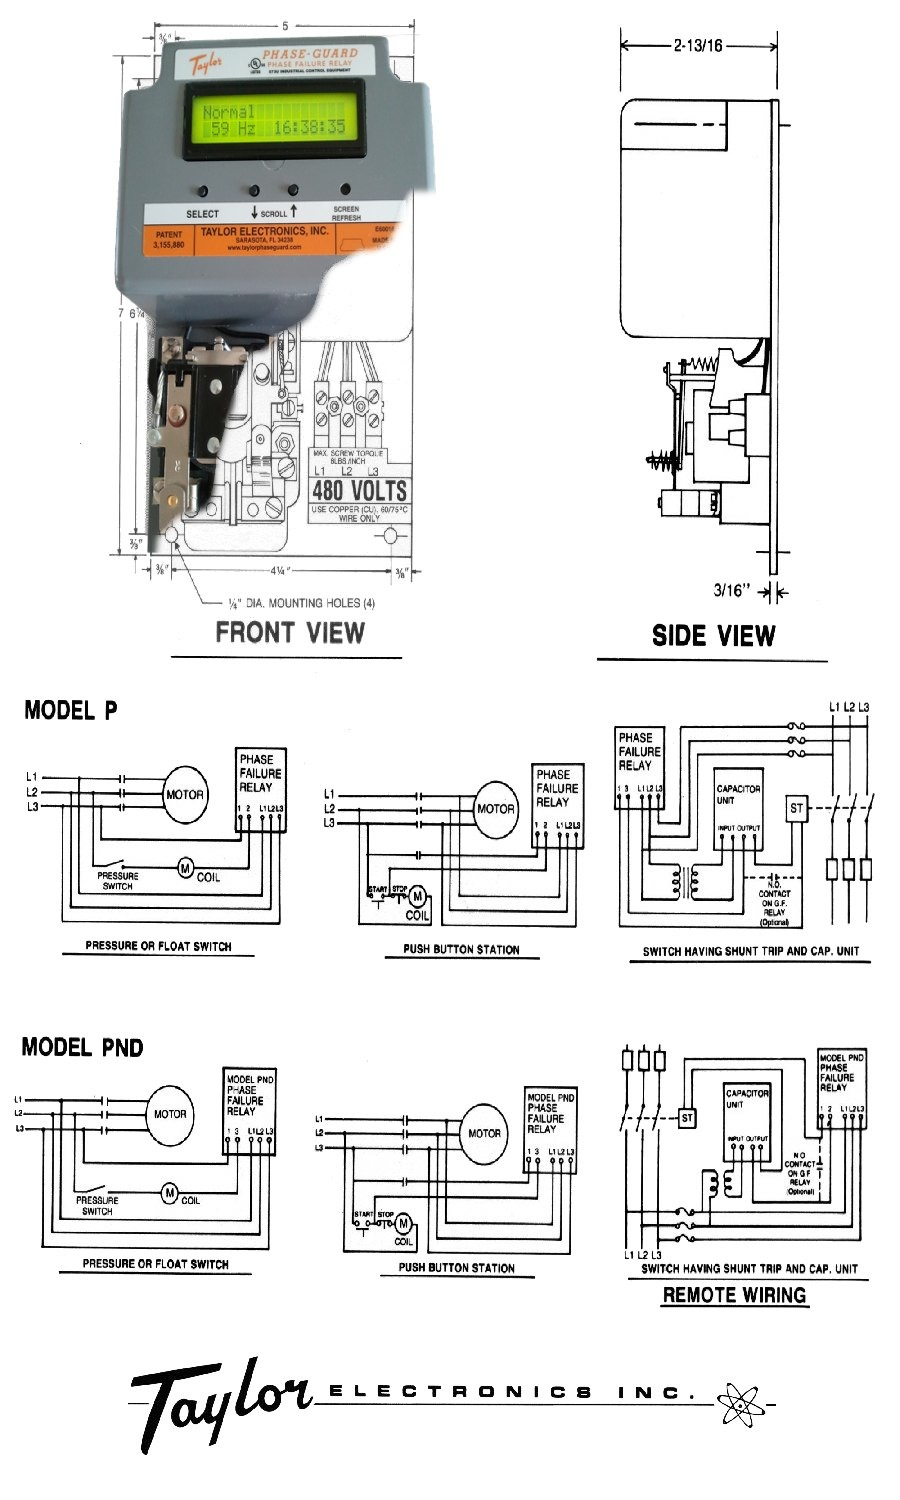 wiring diagram wiring diagram taylor electronics, inc taylor dunn wiring diagram at fashall.co